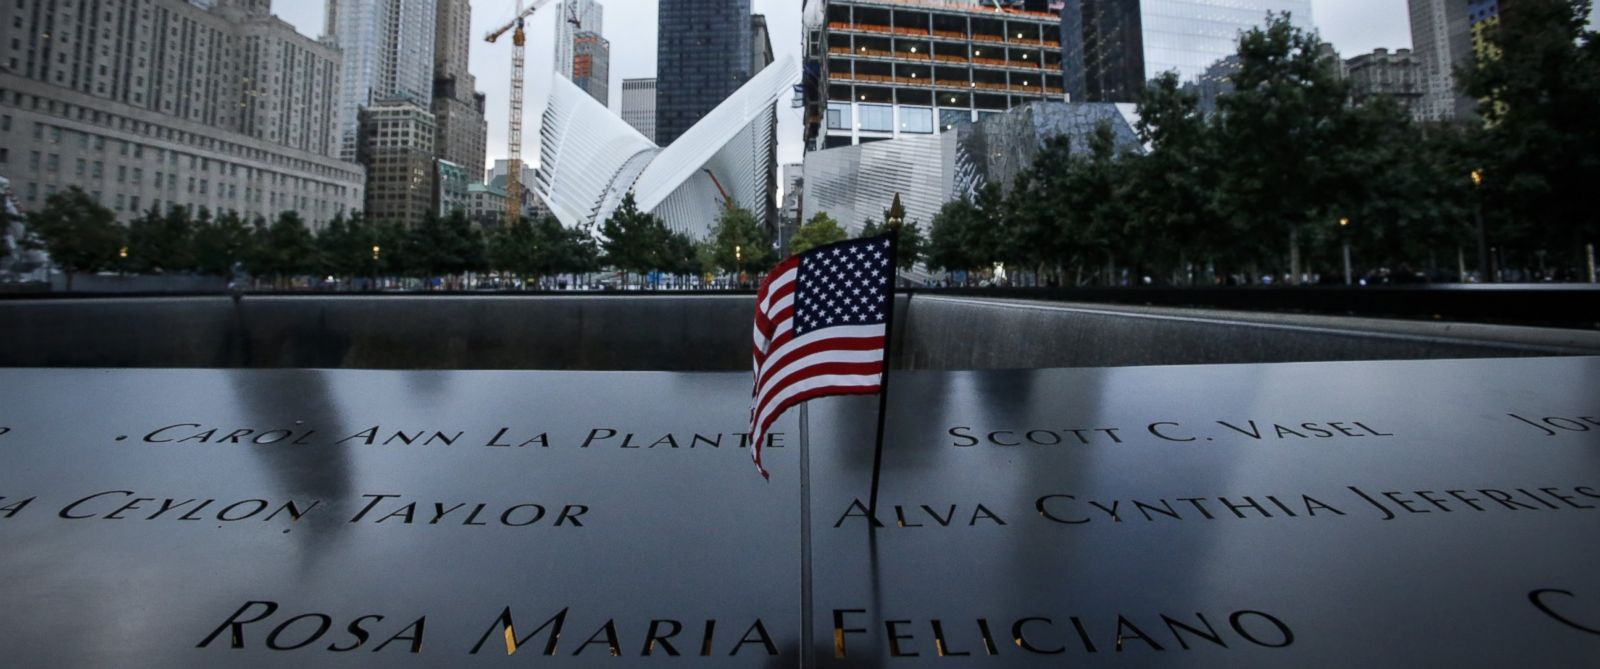 PHOTO: A U.S. flag is placed on the 9/11 memorial before the ceremony to commemorate the 14th Anniversary of the terrorist attacks on Sept. 11, 2015 in New York.